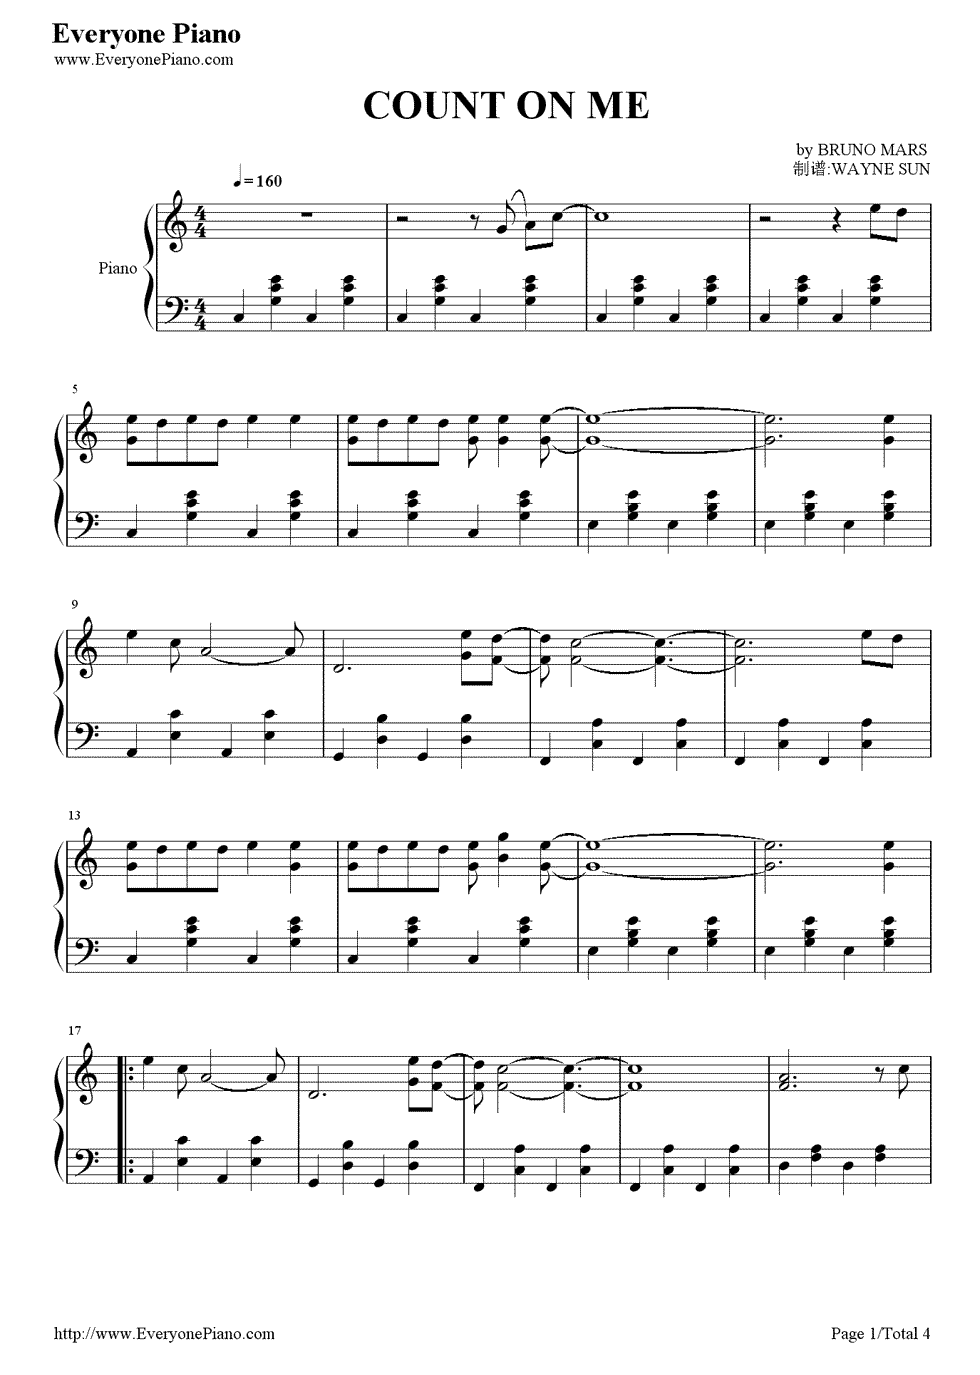 Count on me bruno mars stave preview 1 free piano sheet music listen now print sheet count on me bruno mars stave preview 1 hexwebz Image collections